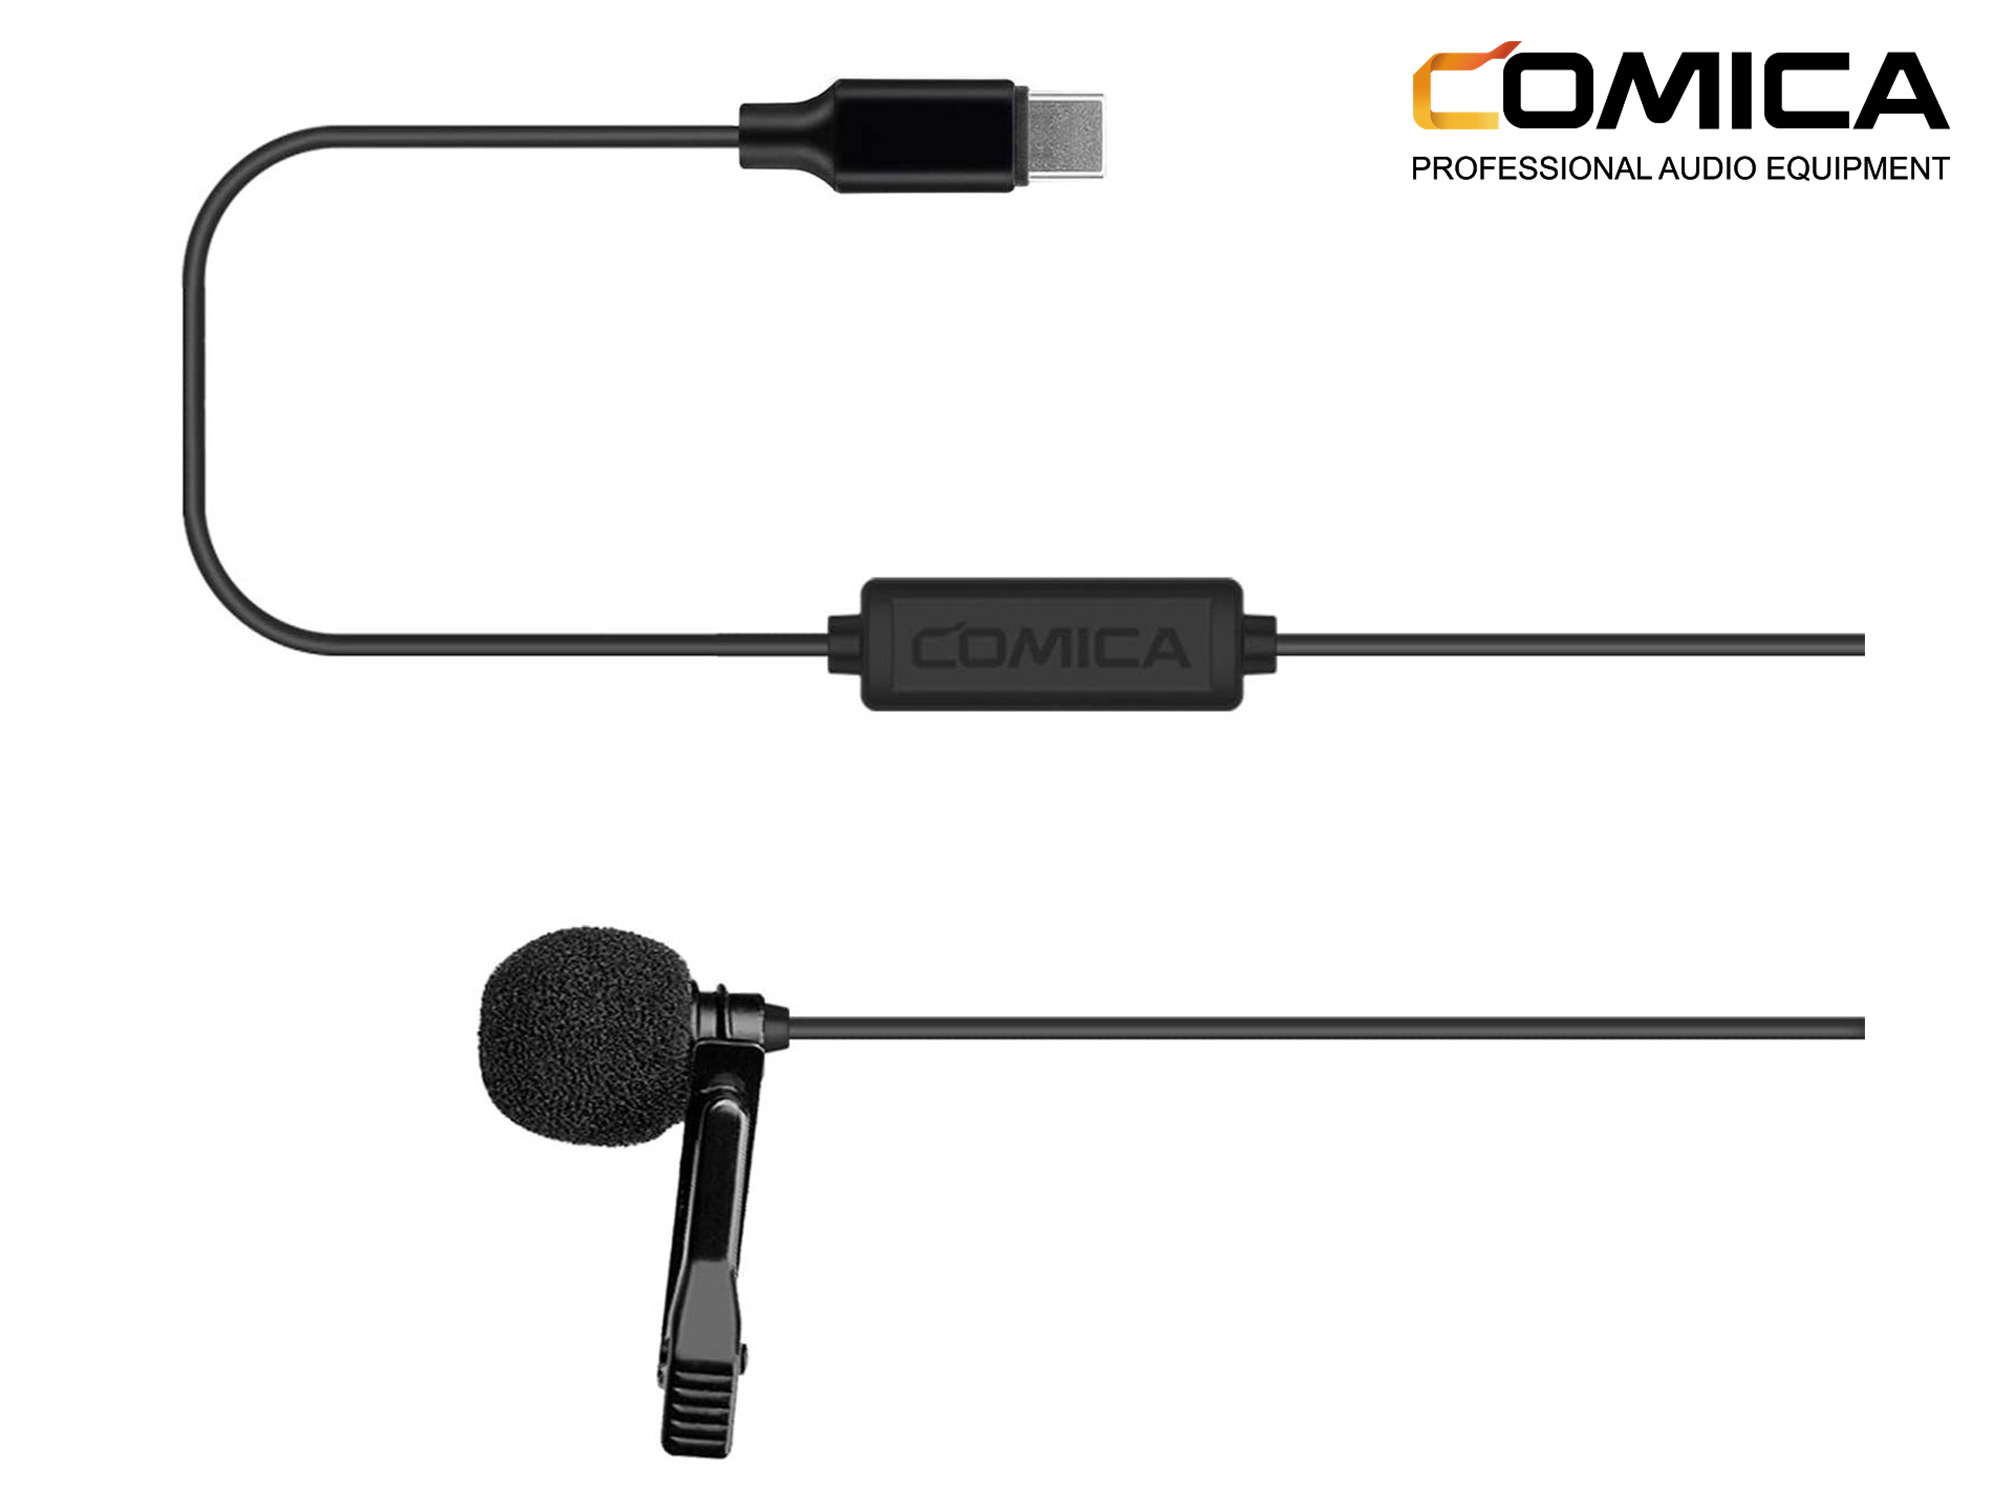 Comica Audio CVM-V01SP(UC) Omnidirectional USB Type-C Lavalier Microphone for Android Devices